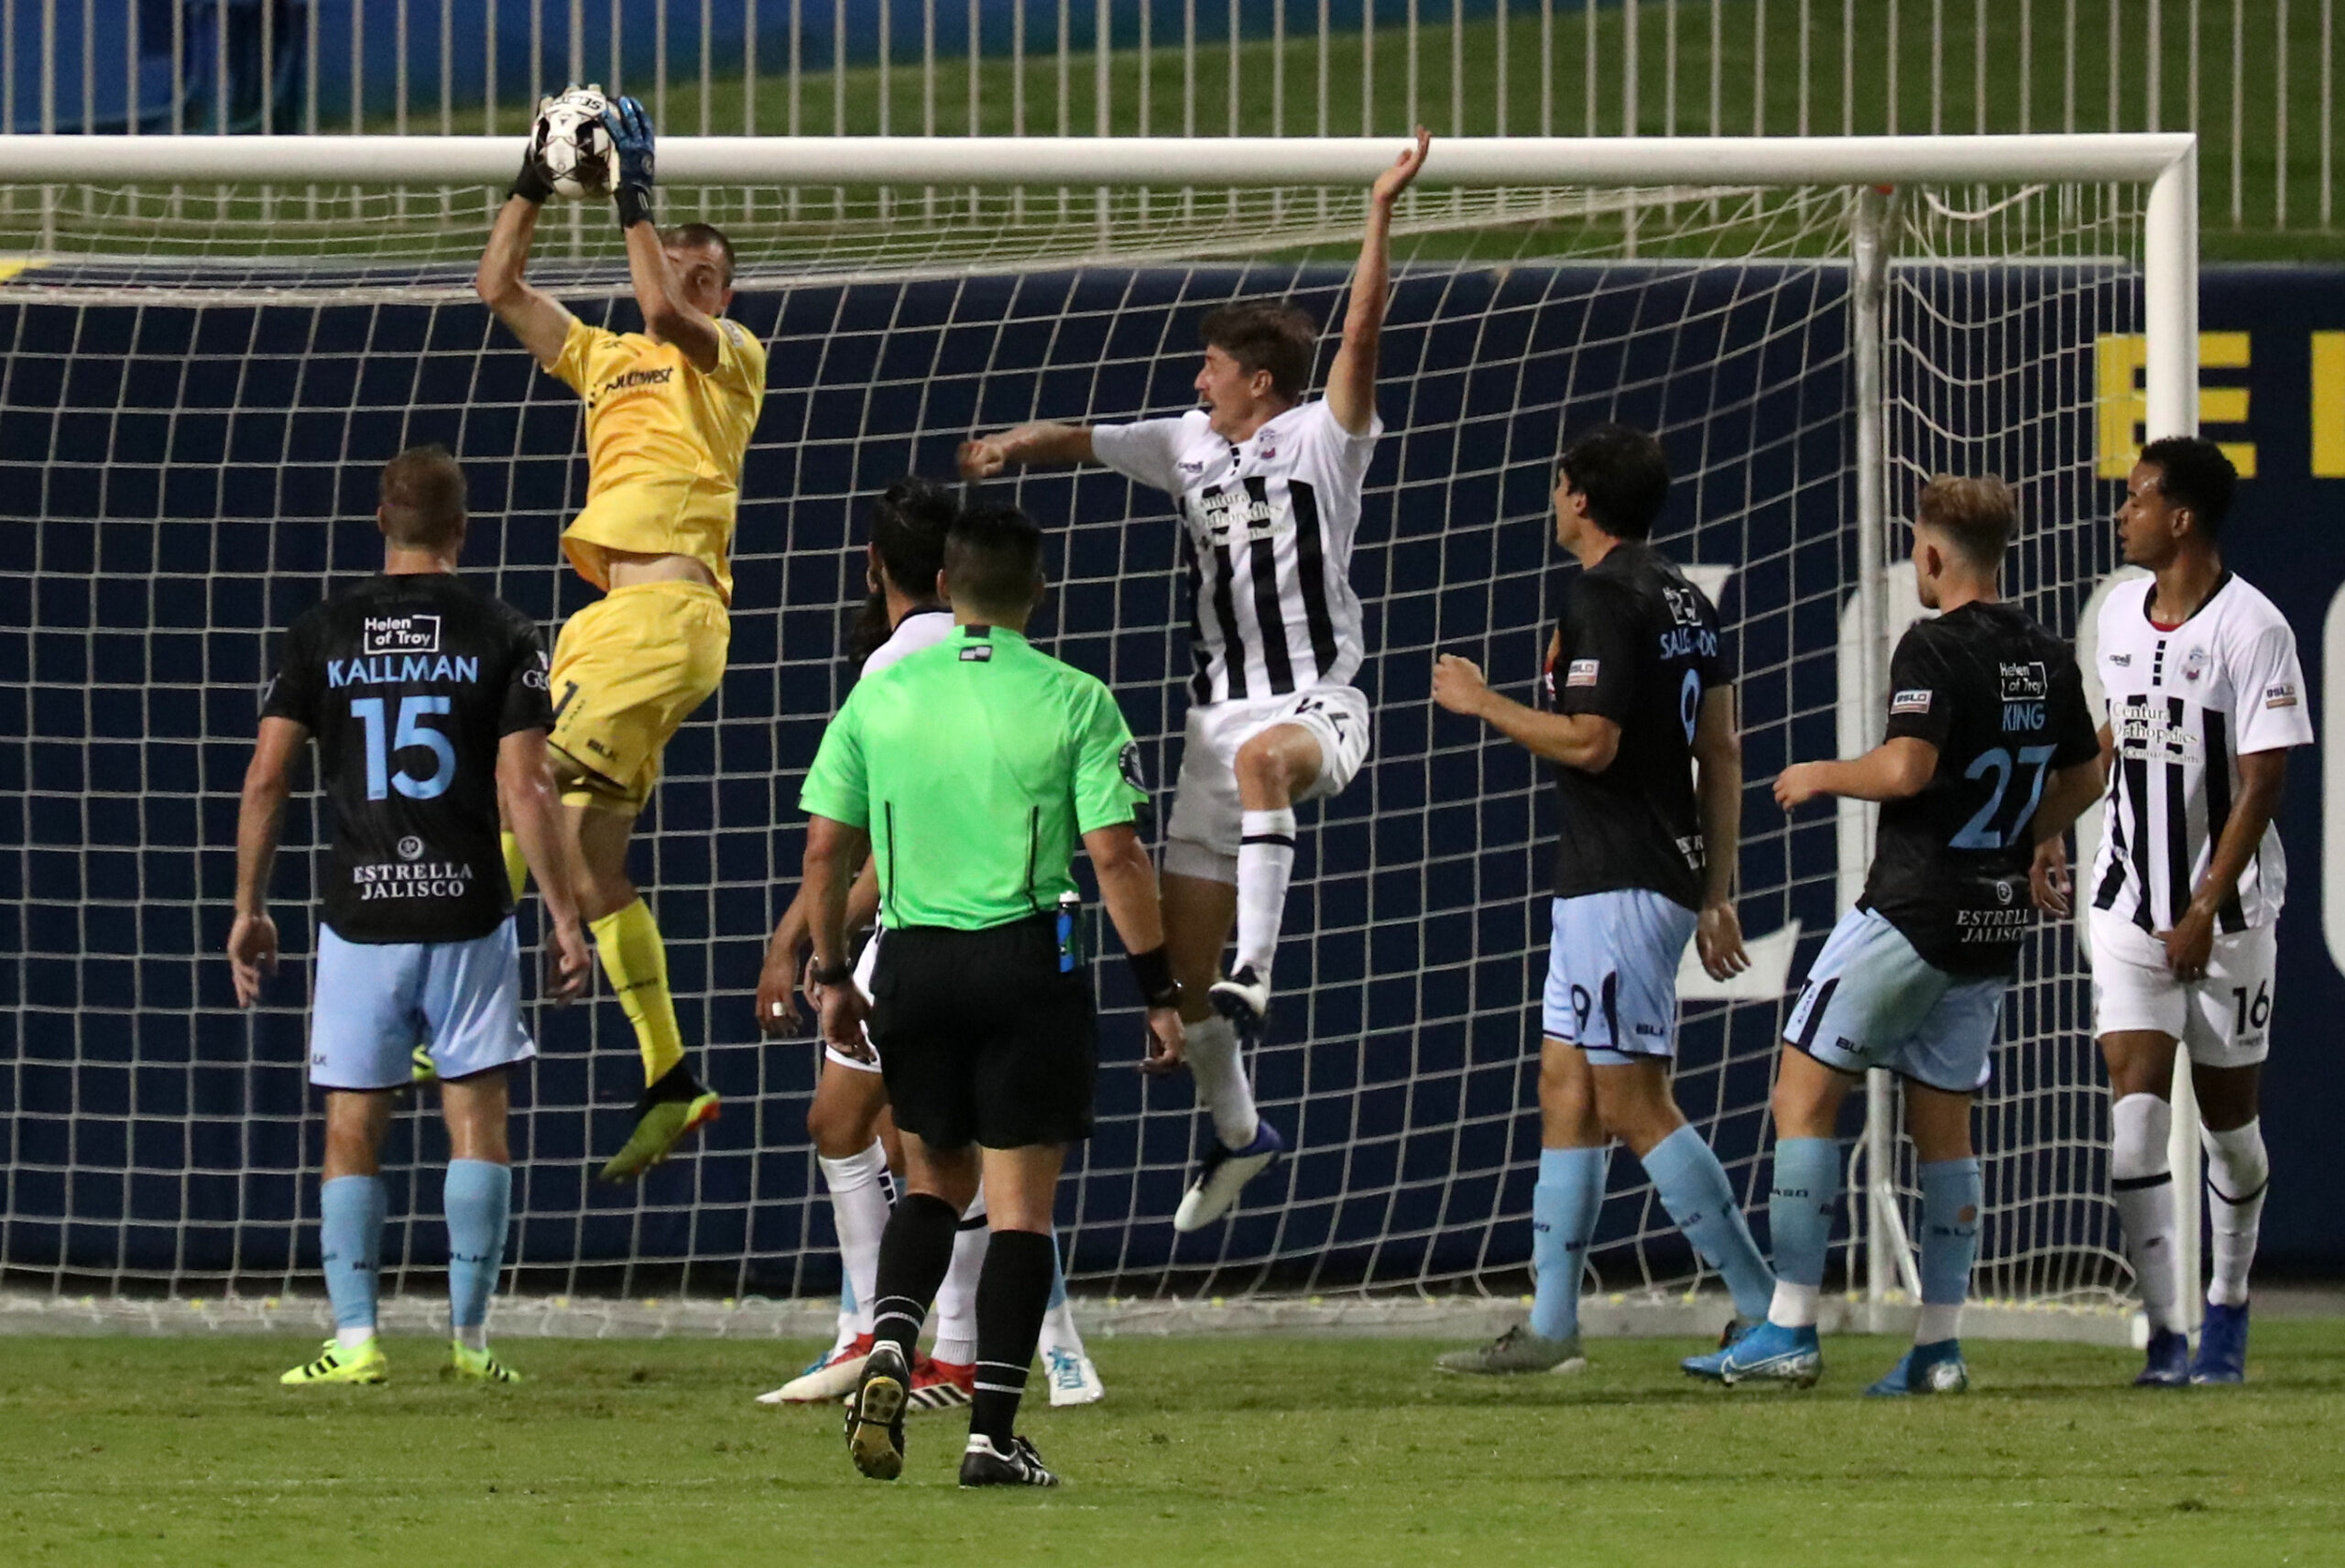 FILE: Wednesday night's defensive stops marked Logan Ketterer's sixth clean sheet of the season, while the team extended its undefeated streak to a club-record 10 games. | Photo by Ruben R. Ramirez – El Paso Herald Post